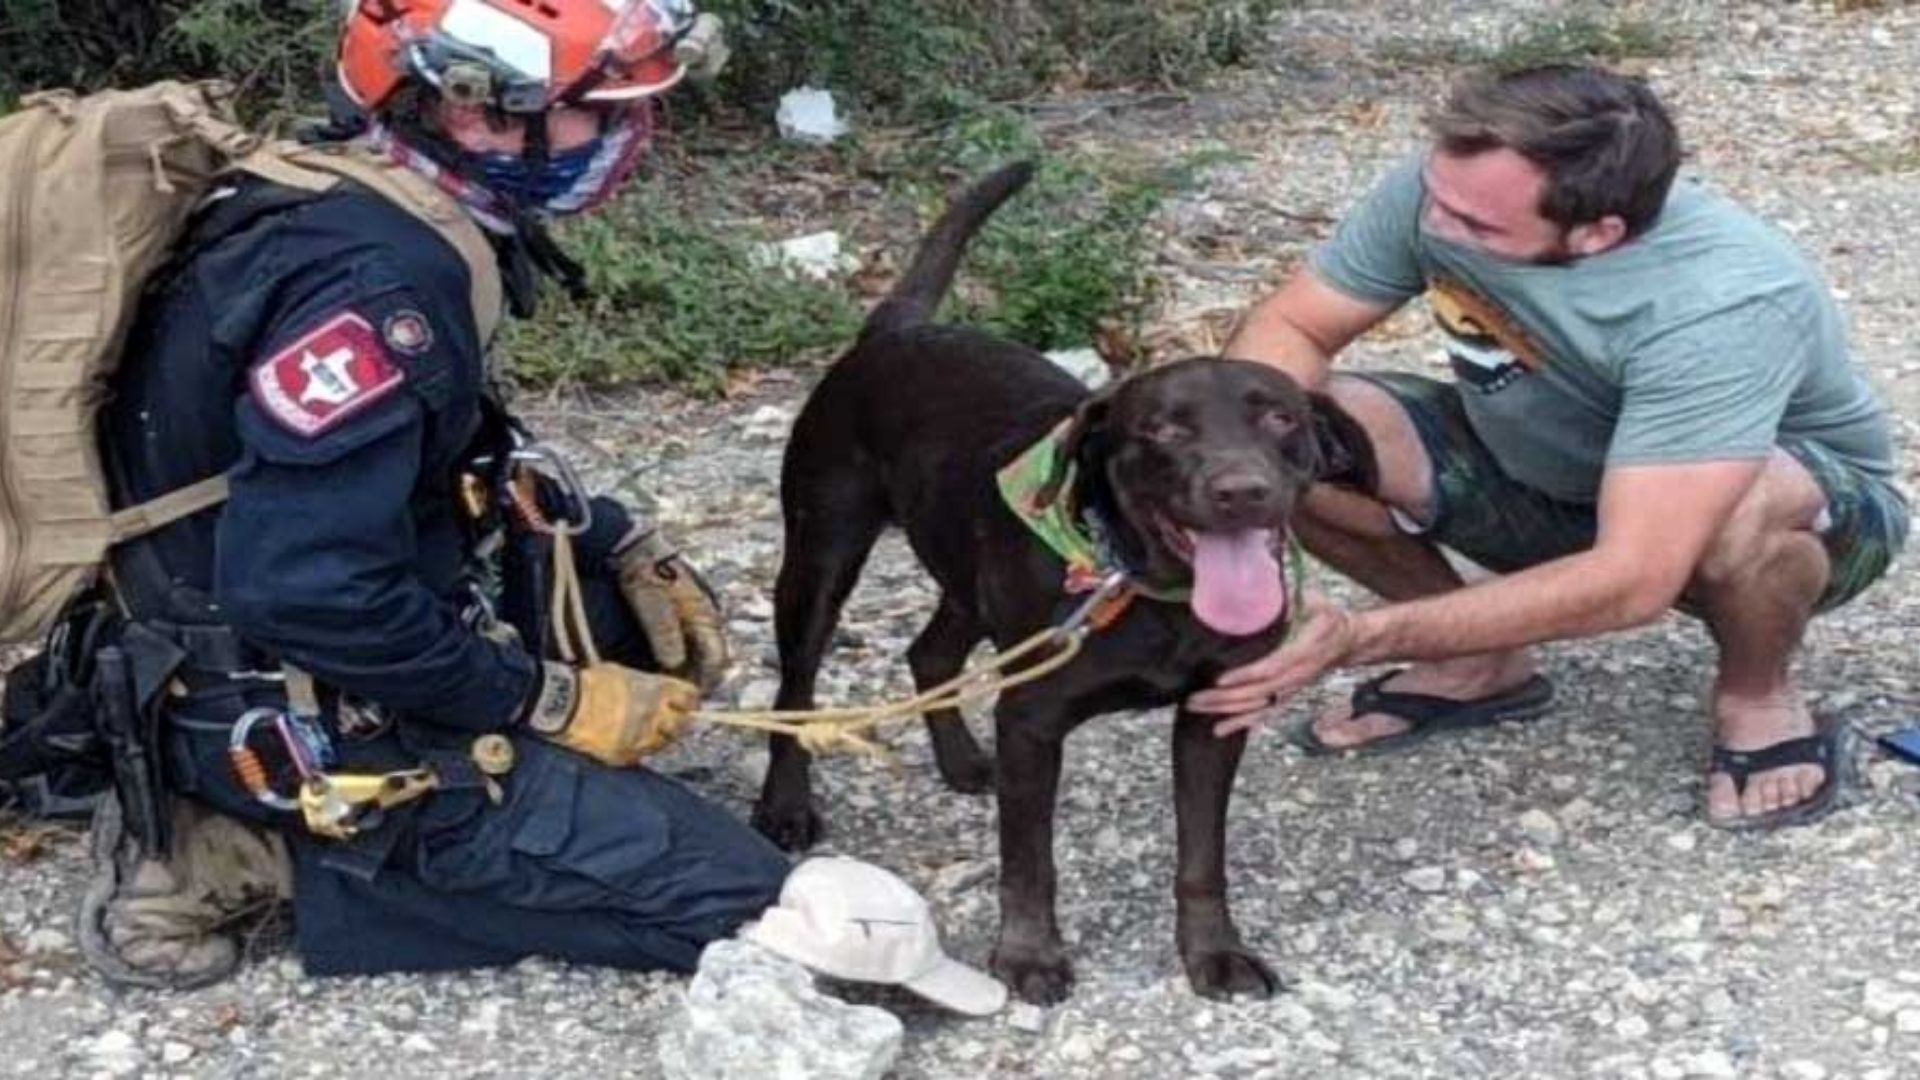 An Amazing Animal Story: A Dog Survives A 70 Foot Fall, Saved By A Miracle!